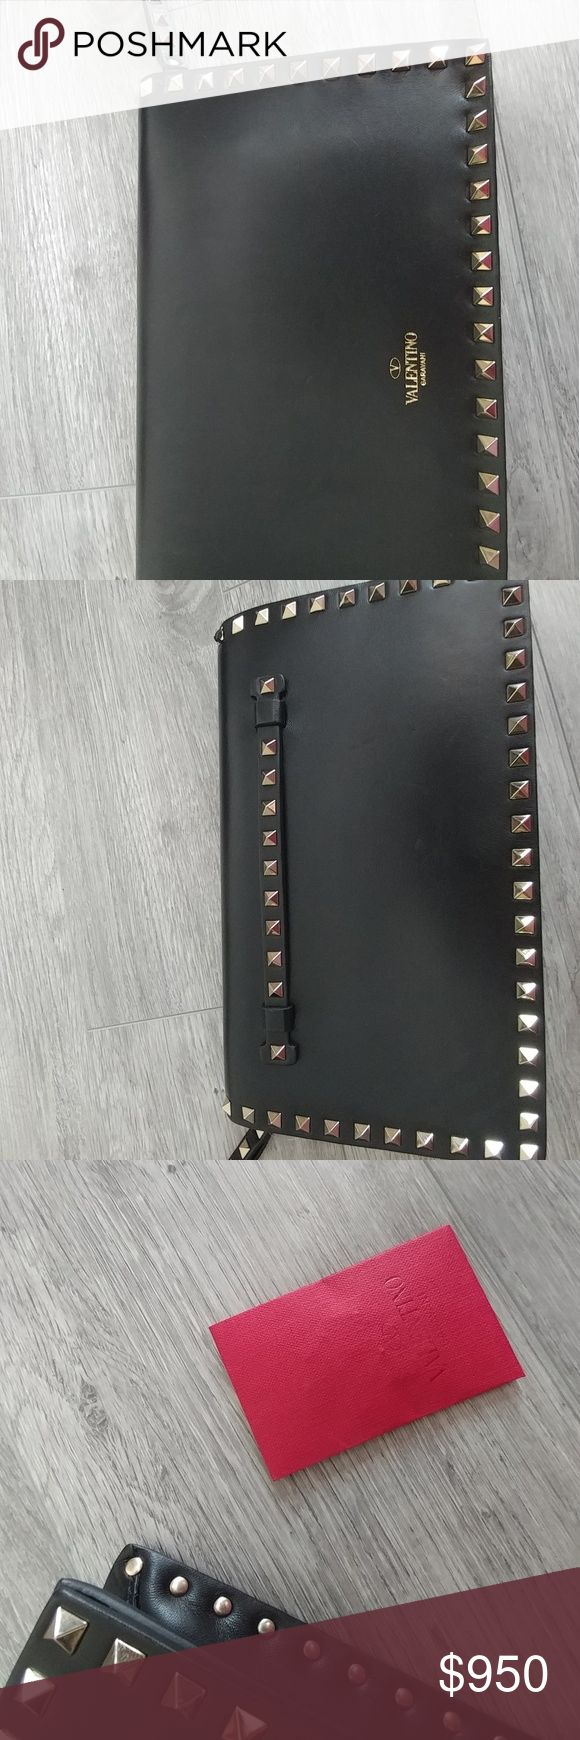 🚫SOLD🚫 Valentino rockstud wristlet clutch Minor scratches 100% authentic Fyi, black never goes on sale! No dust bag, but I do have extra rockstuds in the red envelope Valentino Bags Clutches & Wristlets